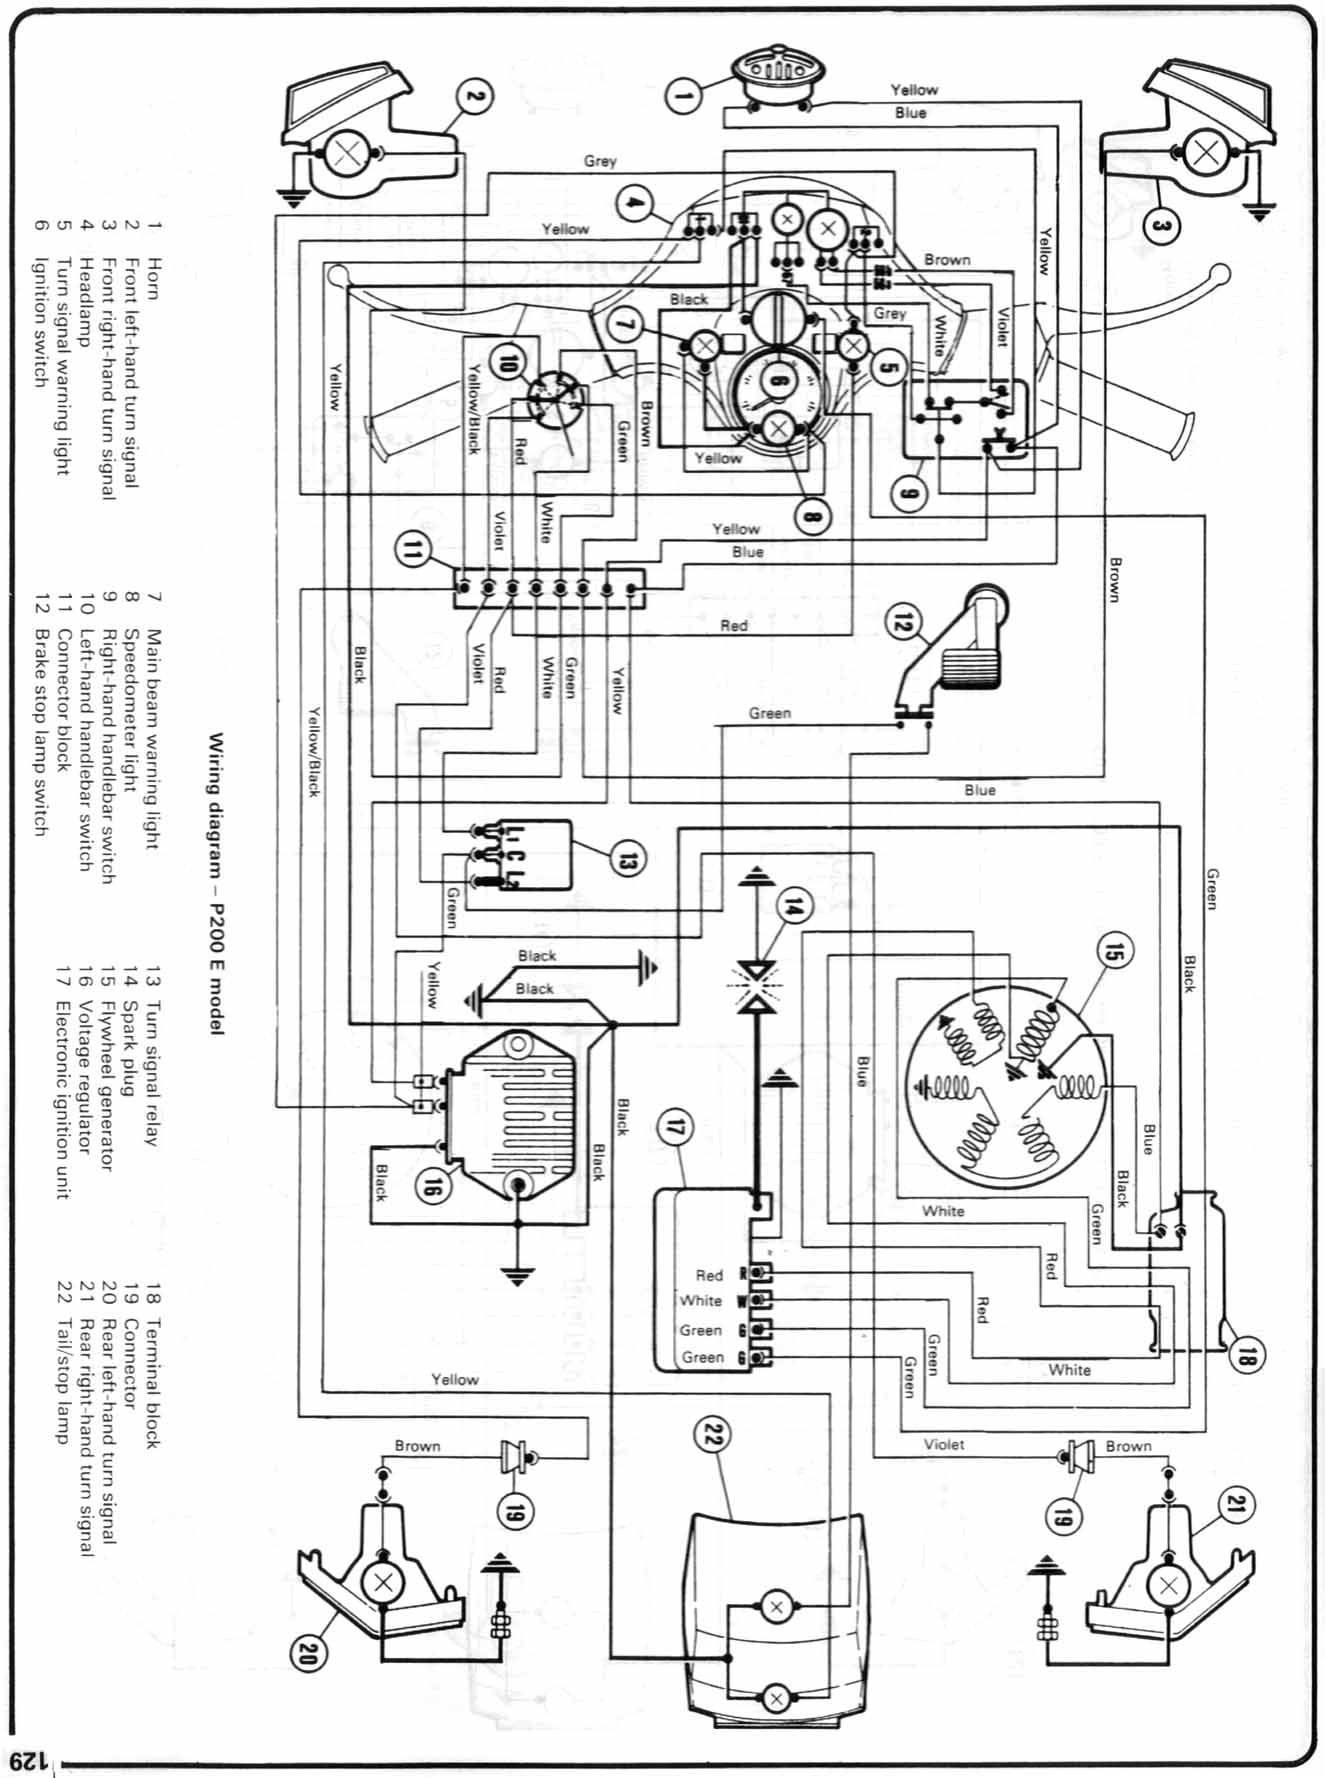 Vespa Wiring Schematic Diagram Will Be A Thing House Gt200 Stator Symbols Guitar Schematics